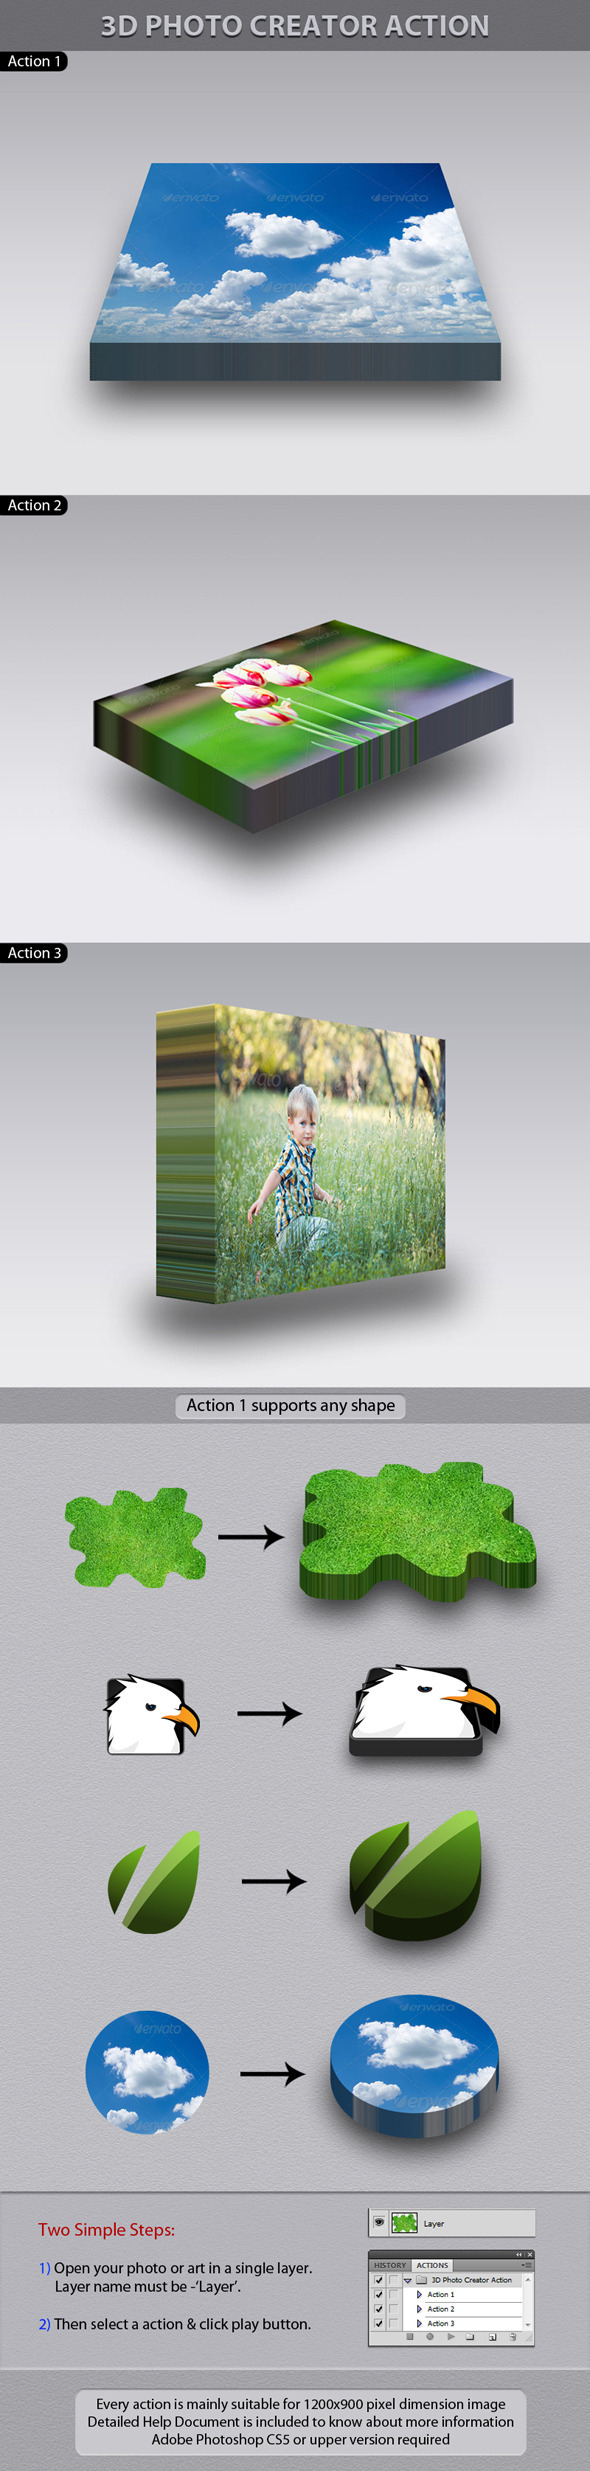 3D Photo Creator Action - Utilities Actions